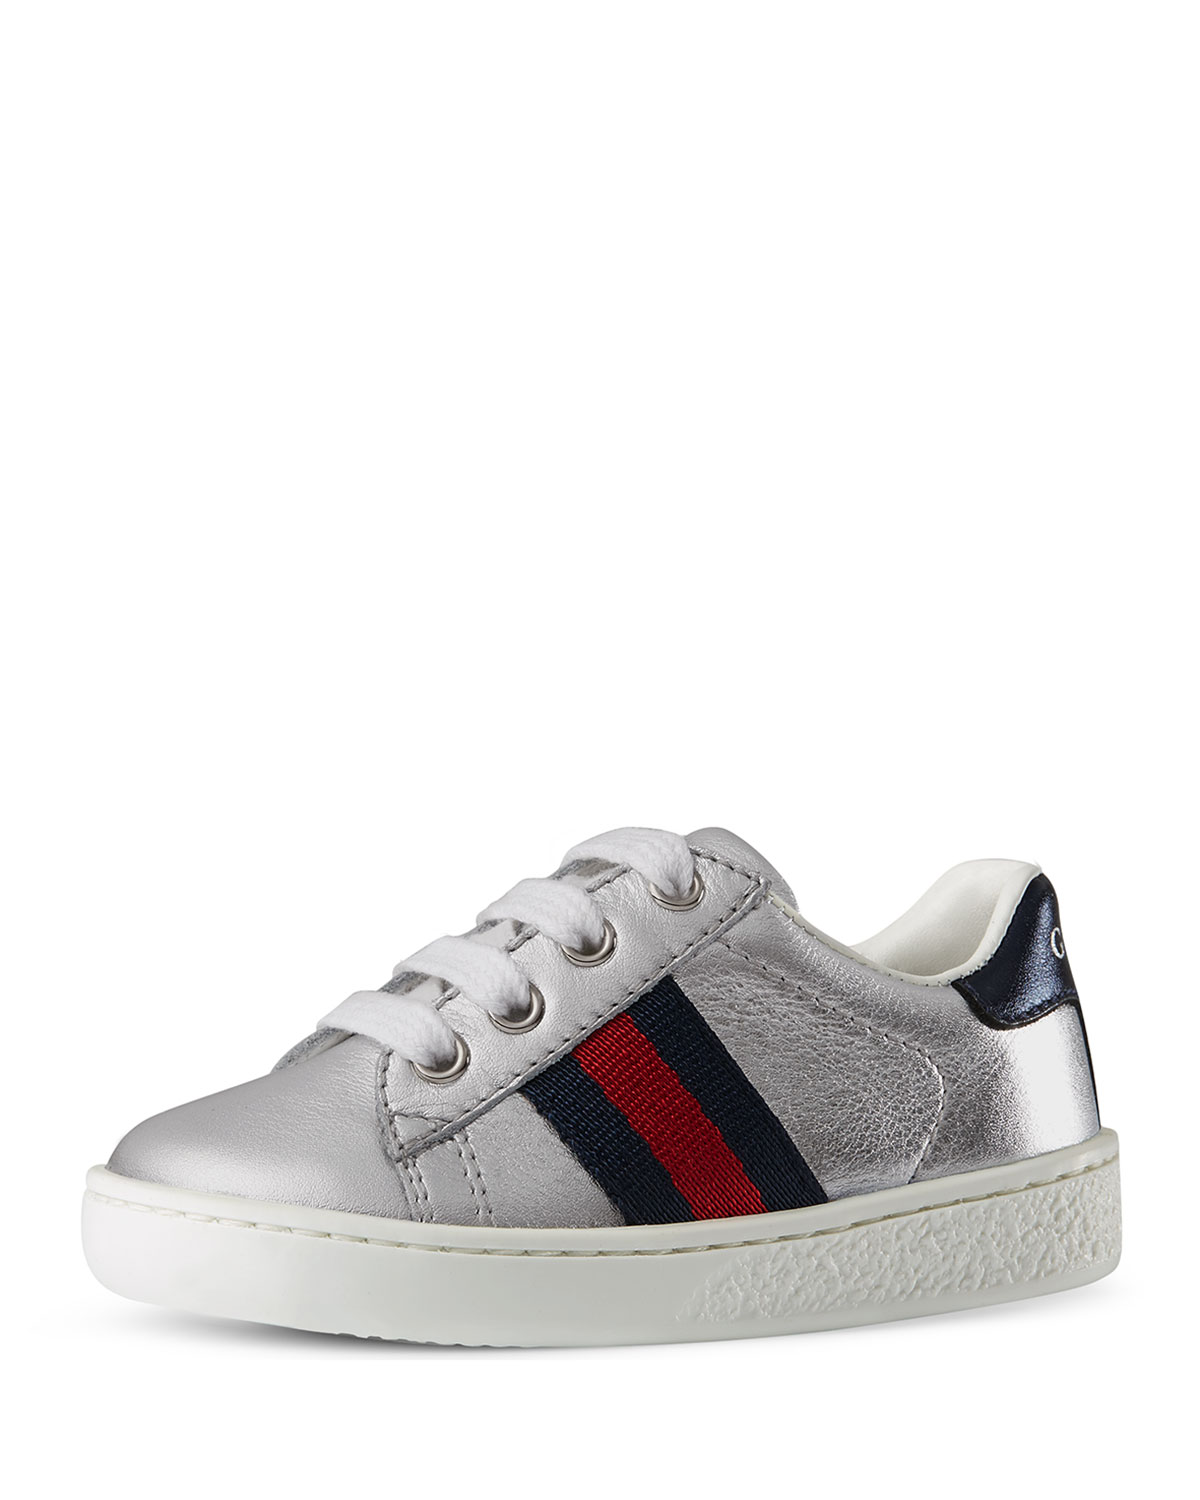 0f89772e470 Gucci New Ace Metallic Leather Sneaker